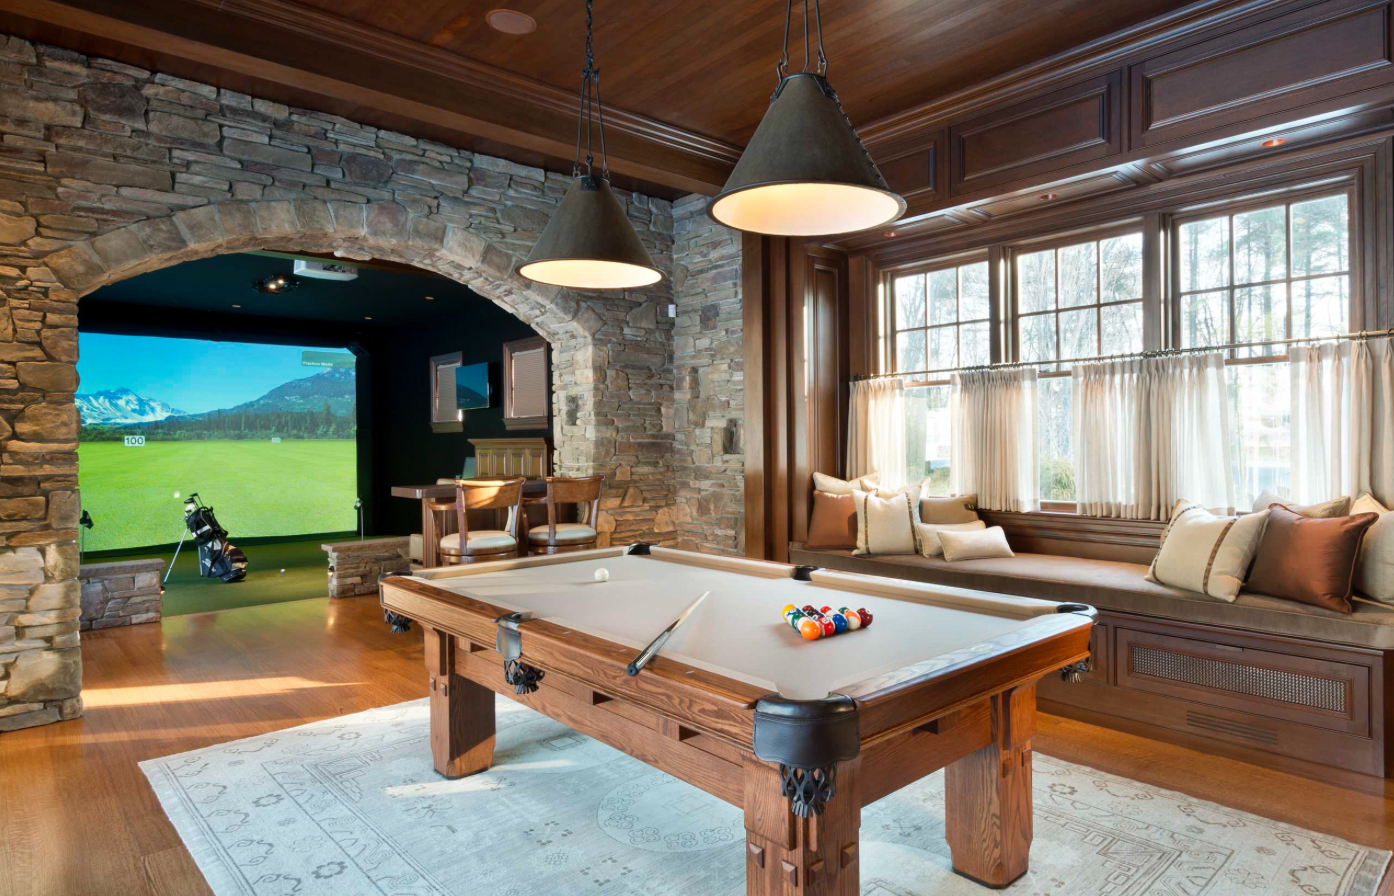 50 best man cave ideas and designs for 2017 Design this home game ideas